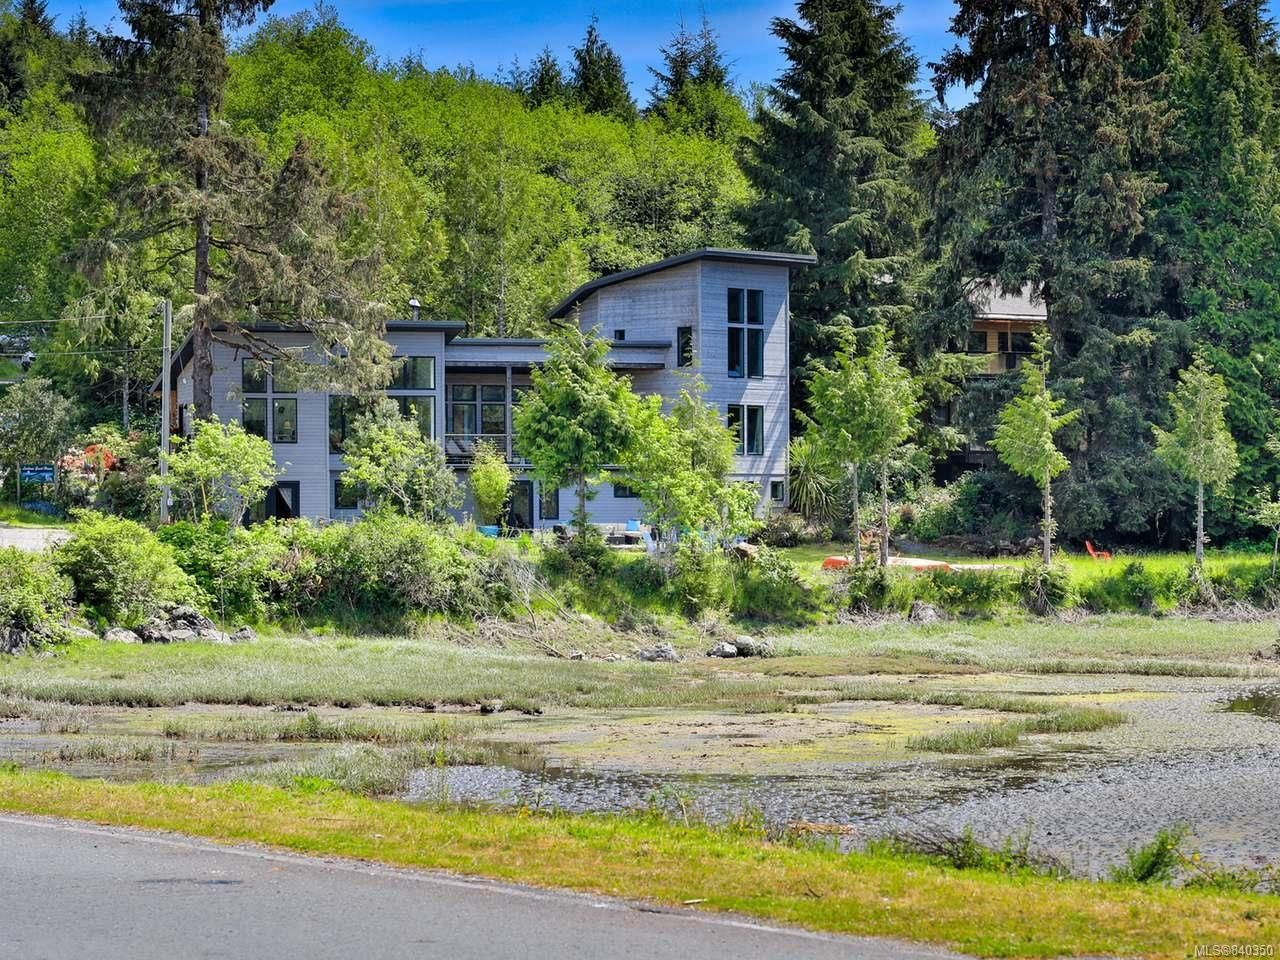 Photo 75: Photos: 1068 Helen Rd in UCLUELET: PA Ucluelet House for sale (Port Alberni)  : MLS®# 840350